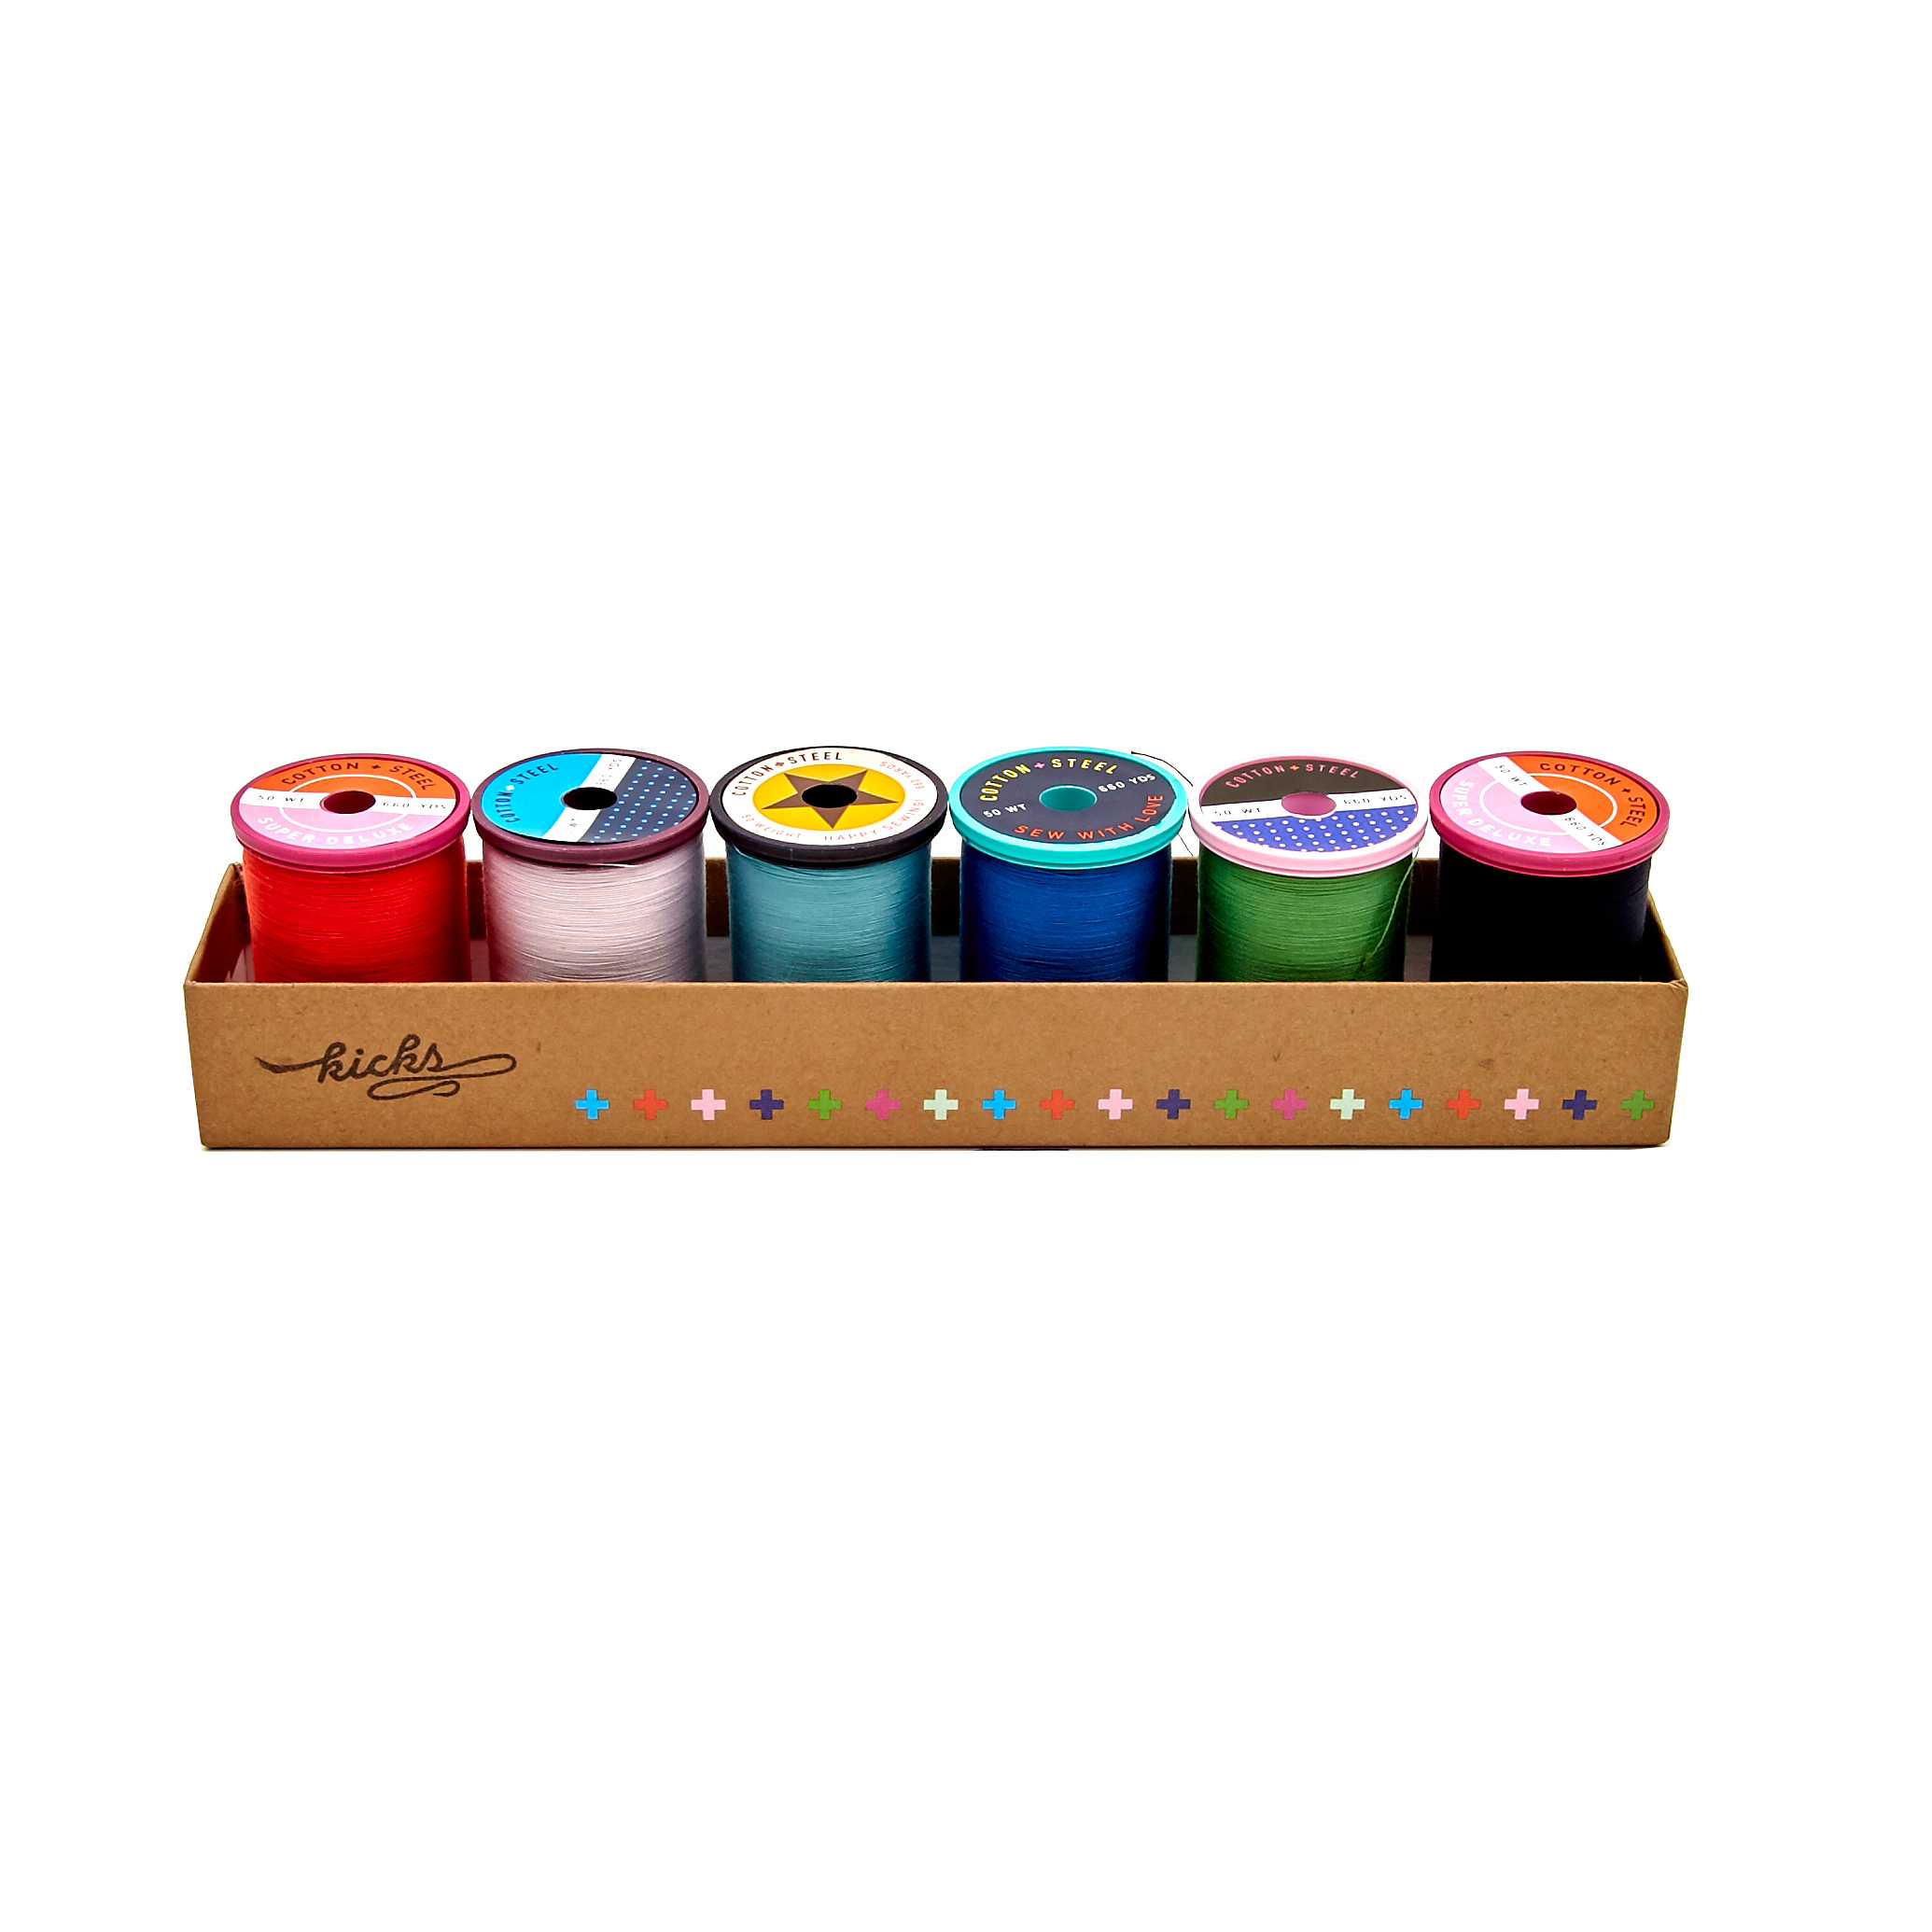 Image of Cotton + Steel 50wt. Cotton Thread Set by Sulky Kicks Collection